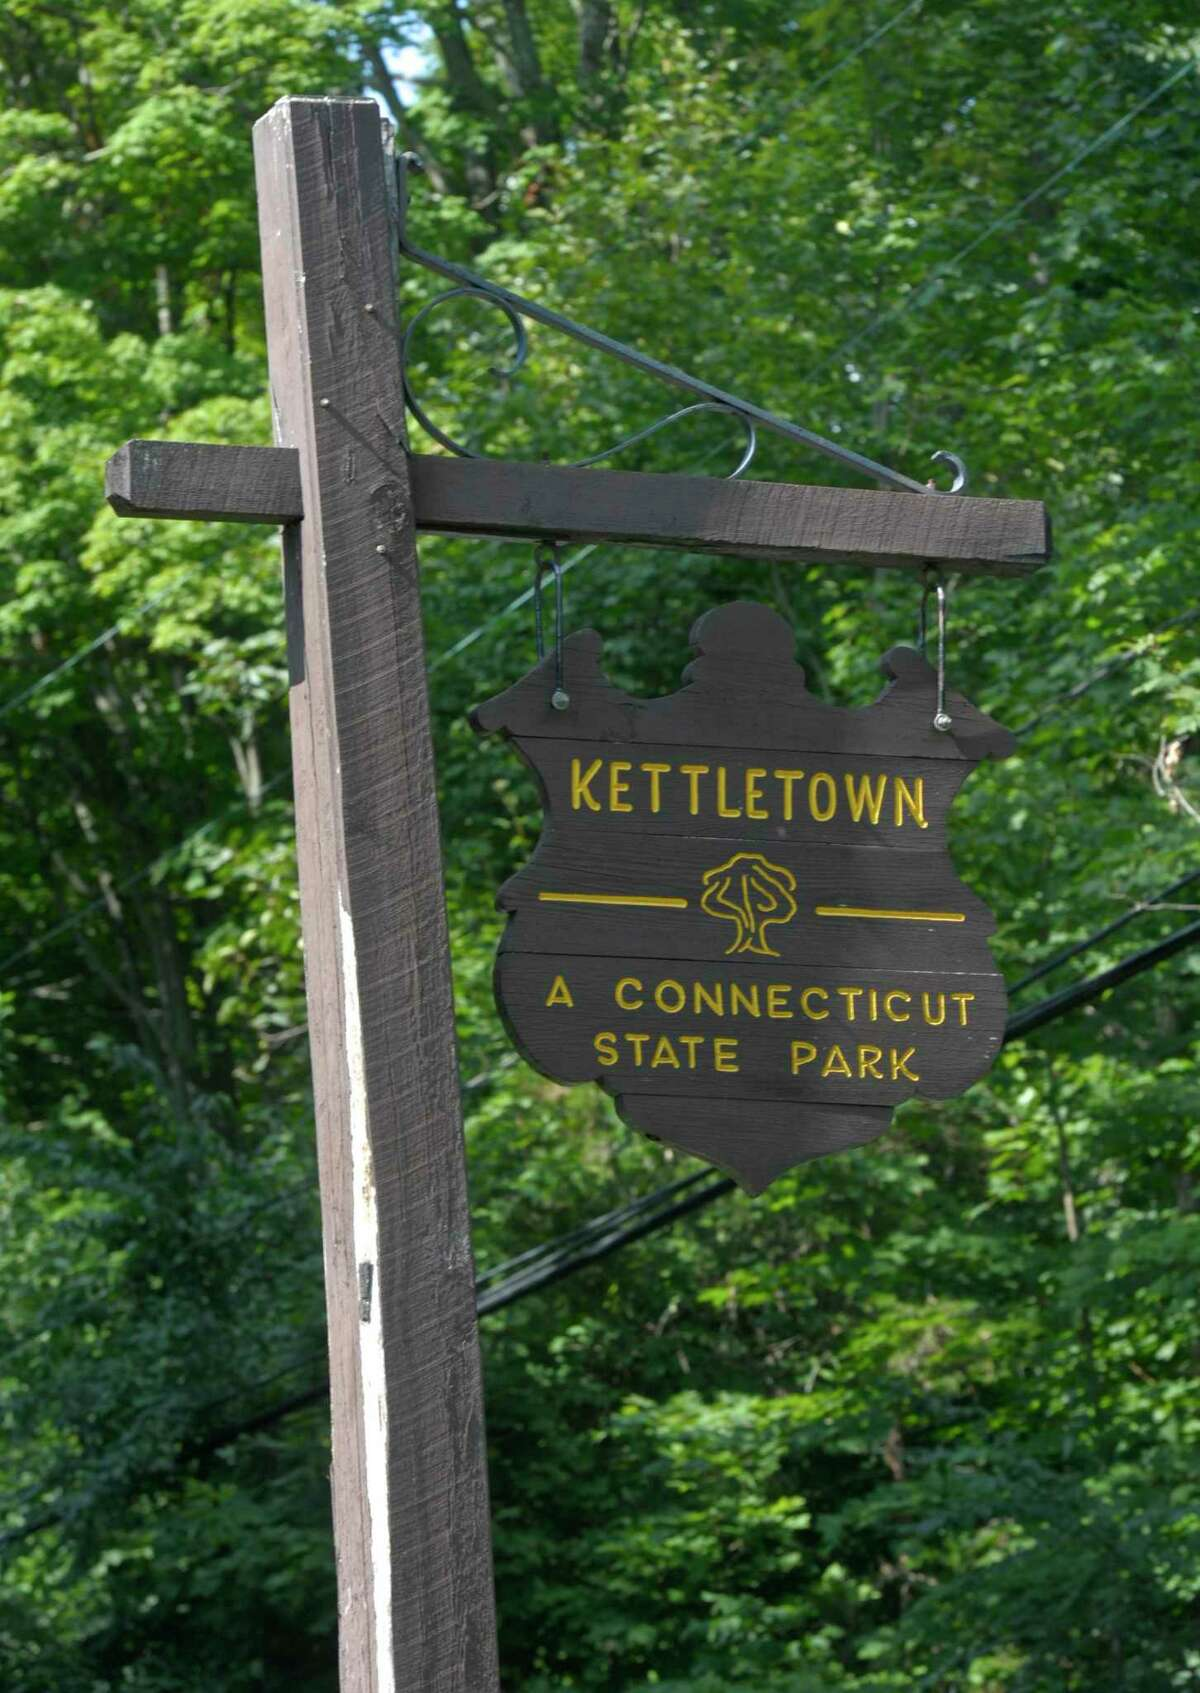 Large cyanobacteria blooms in Kettletown State Park has closed the beach. Officials expect the blooms will keep the beach closed for the rest of the season. Thursday, August 9, 2019, in Southbury, Conn.